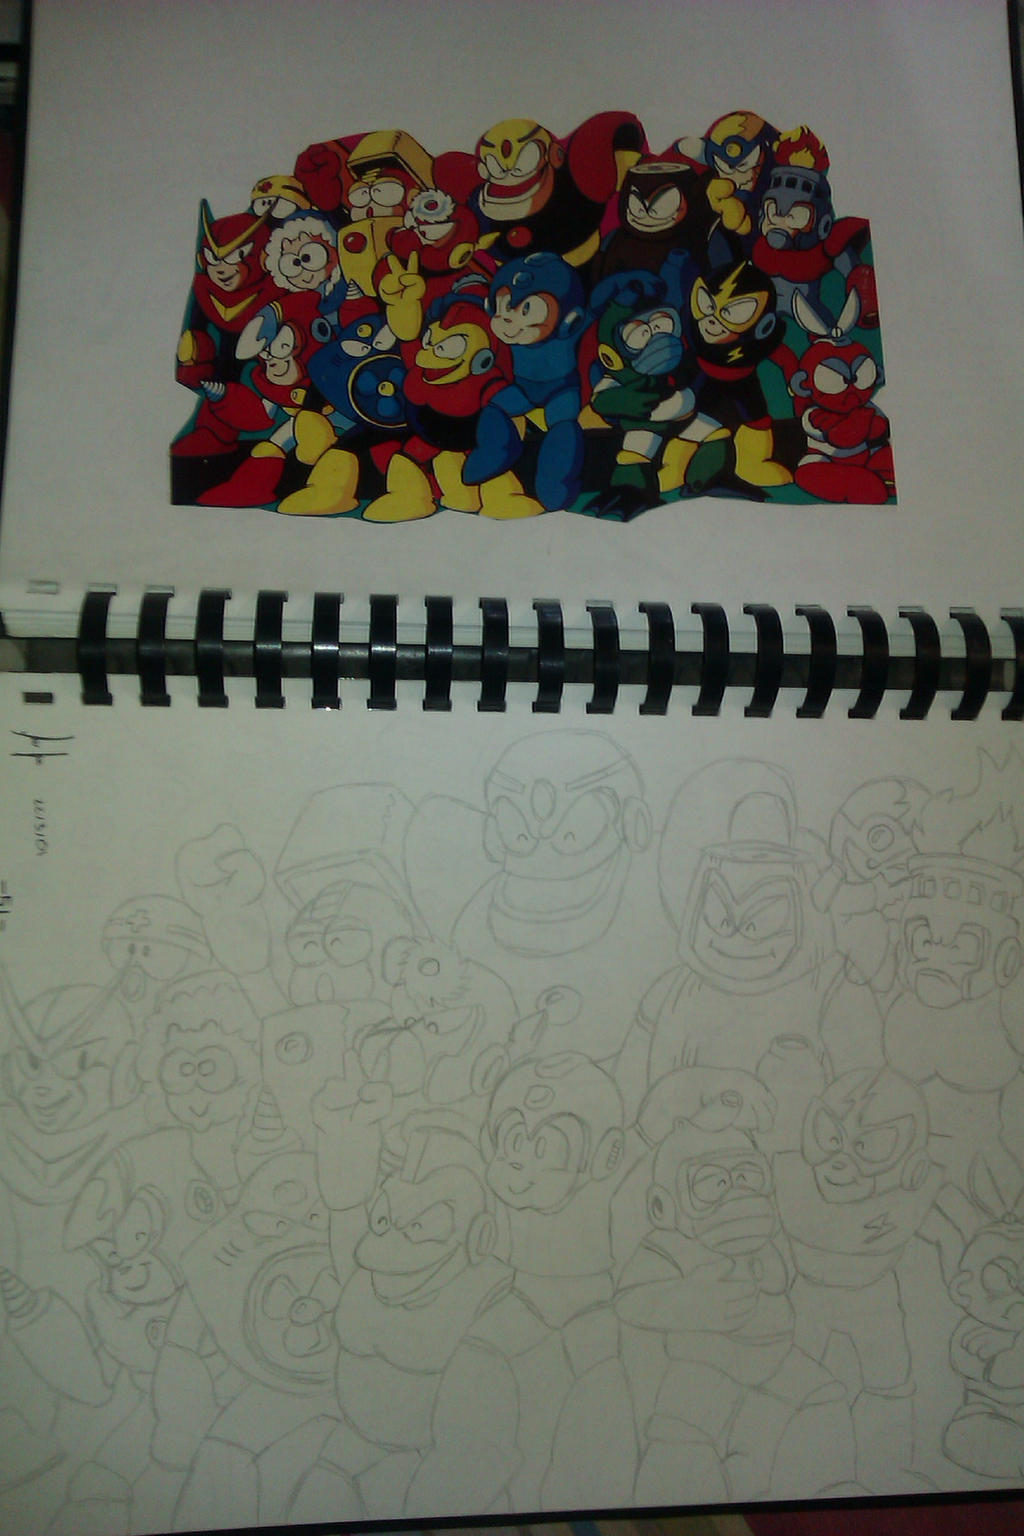 Megaman group by Megasc0rpion